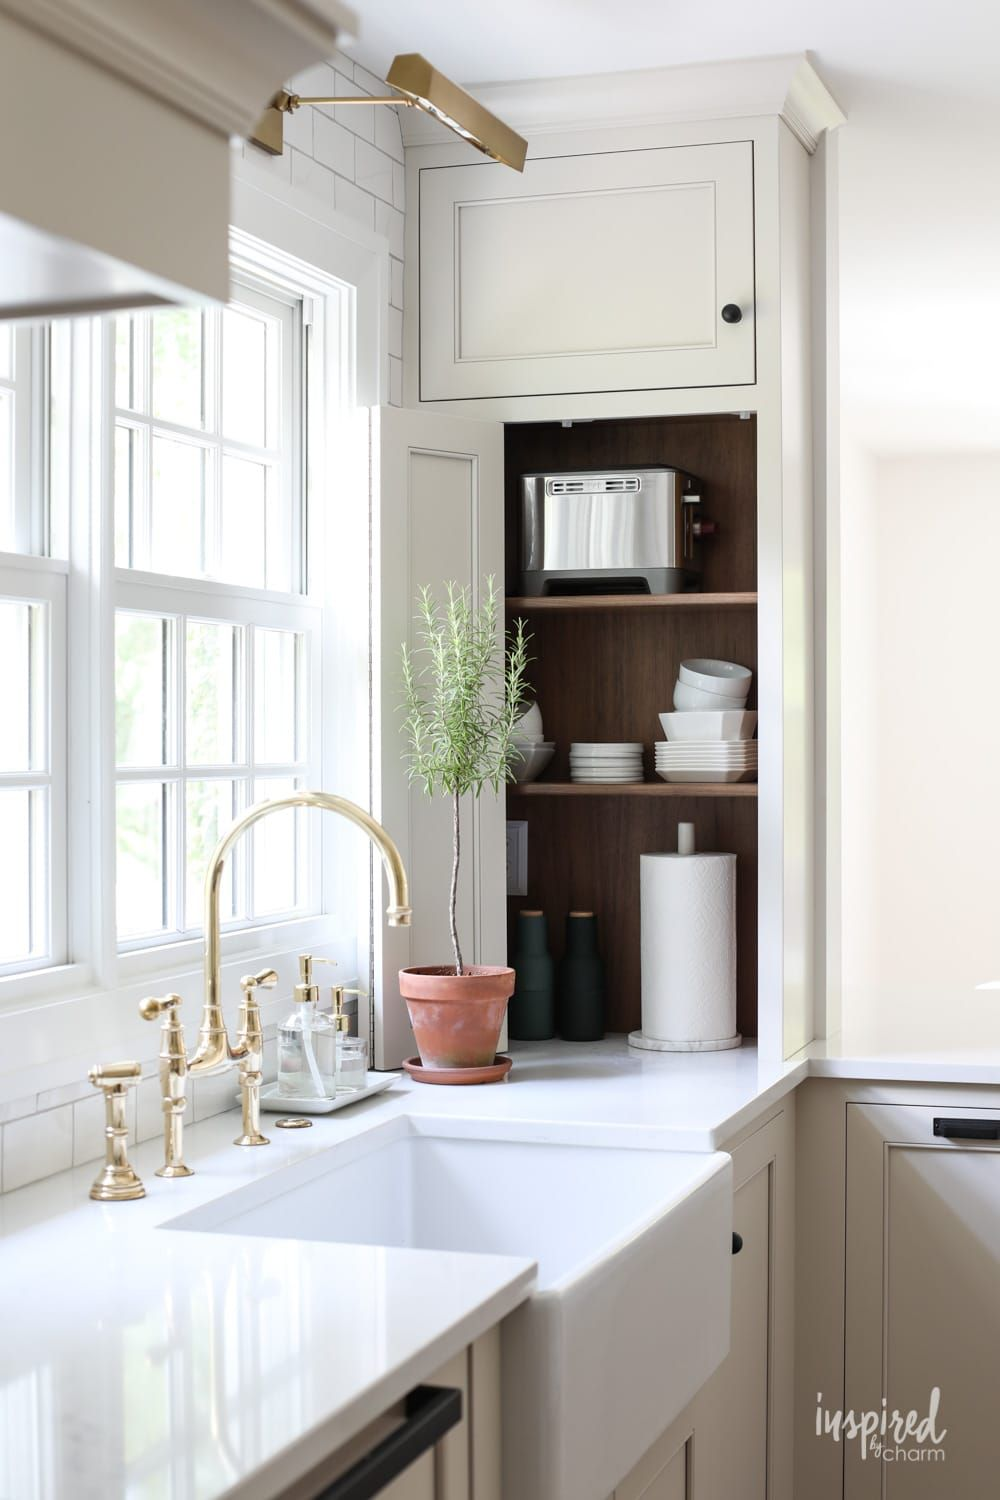 Bayberry Kitchen Remodel Reveal Inspired By Charm Kitchen Makeover Kitchen Remodel Kitchen Decor Modern Grey Kitchen